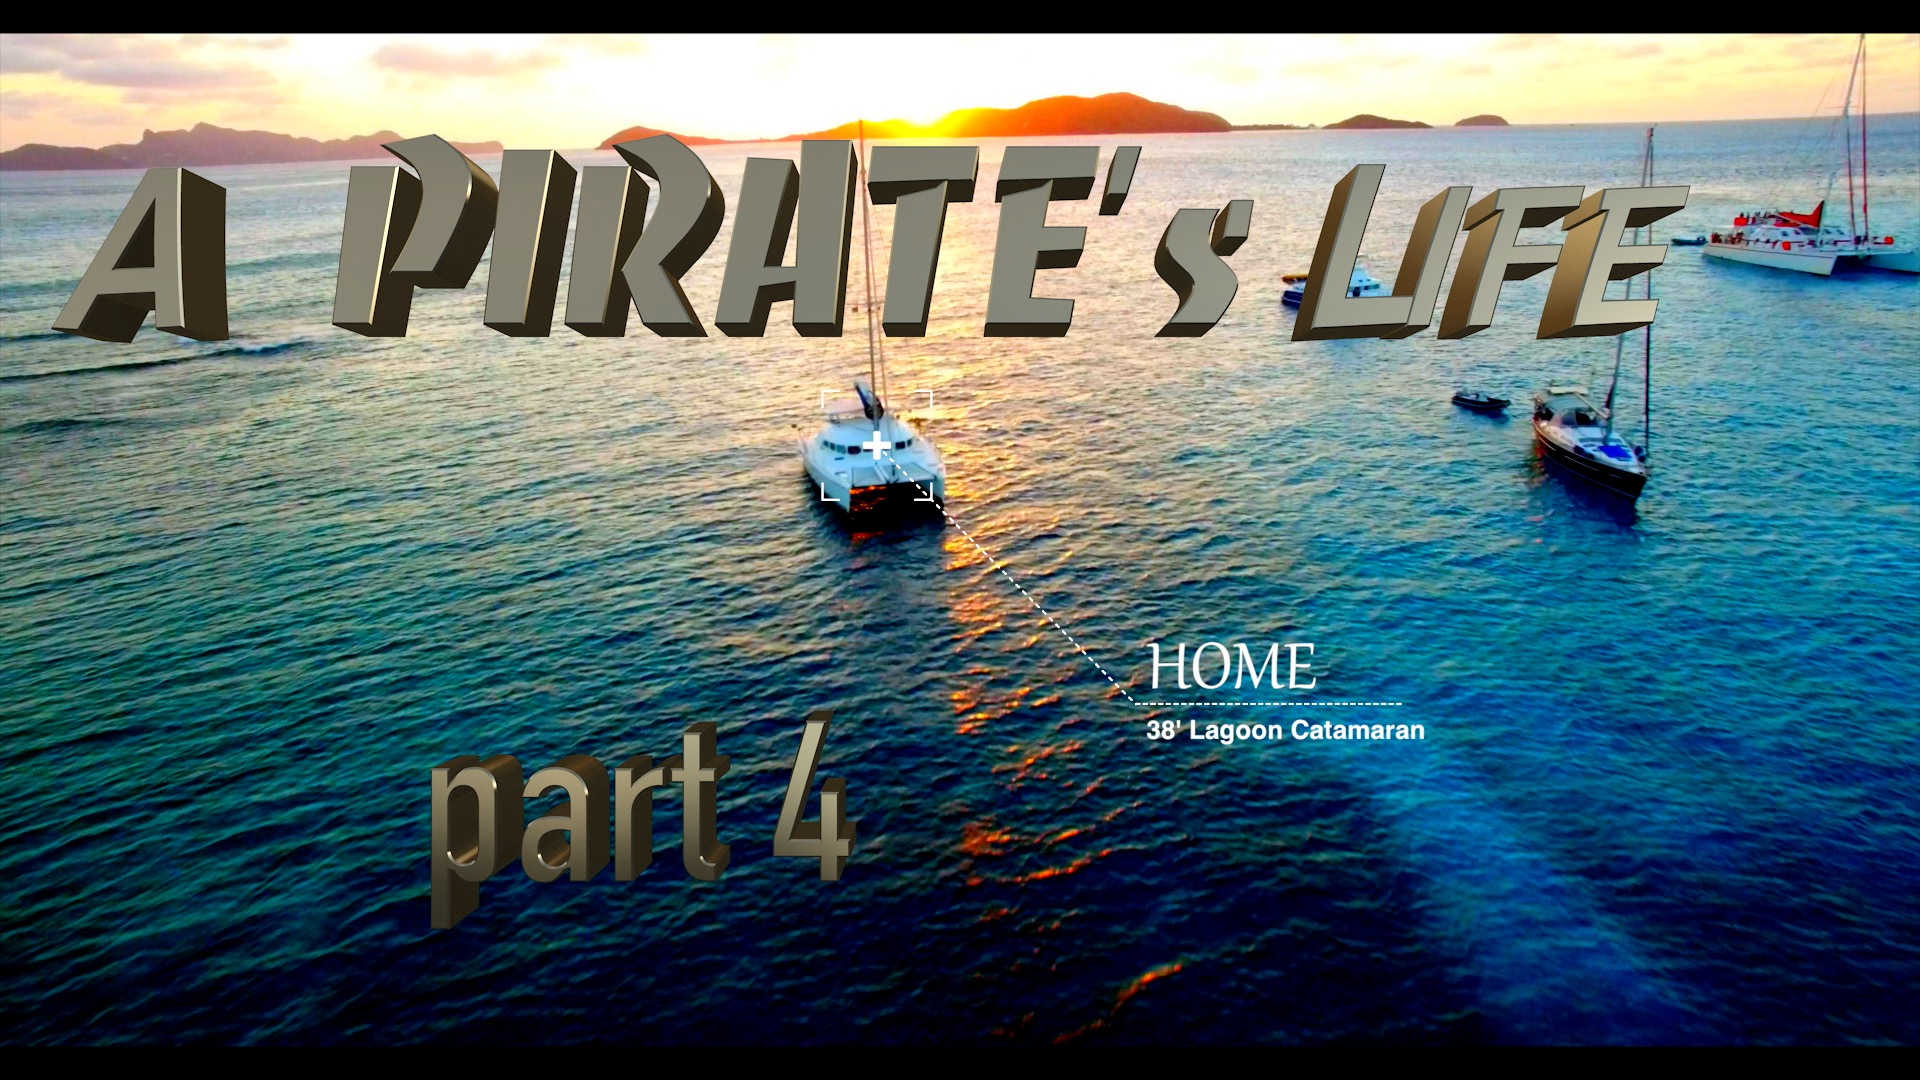 A Pirate's Life – Part 4